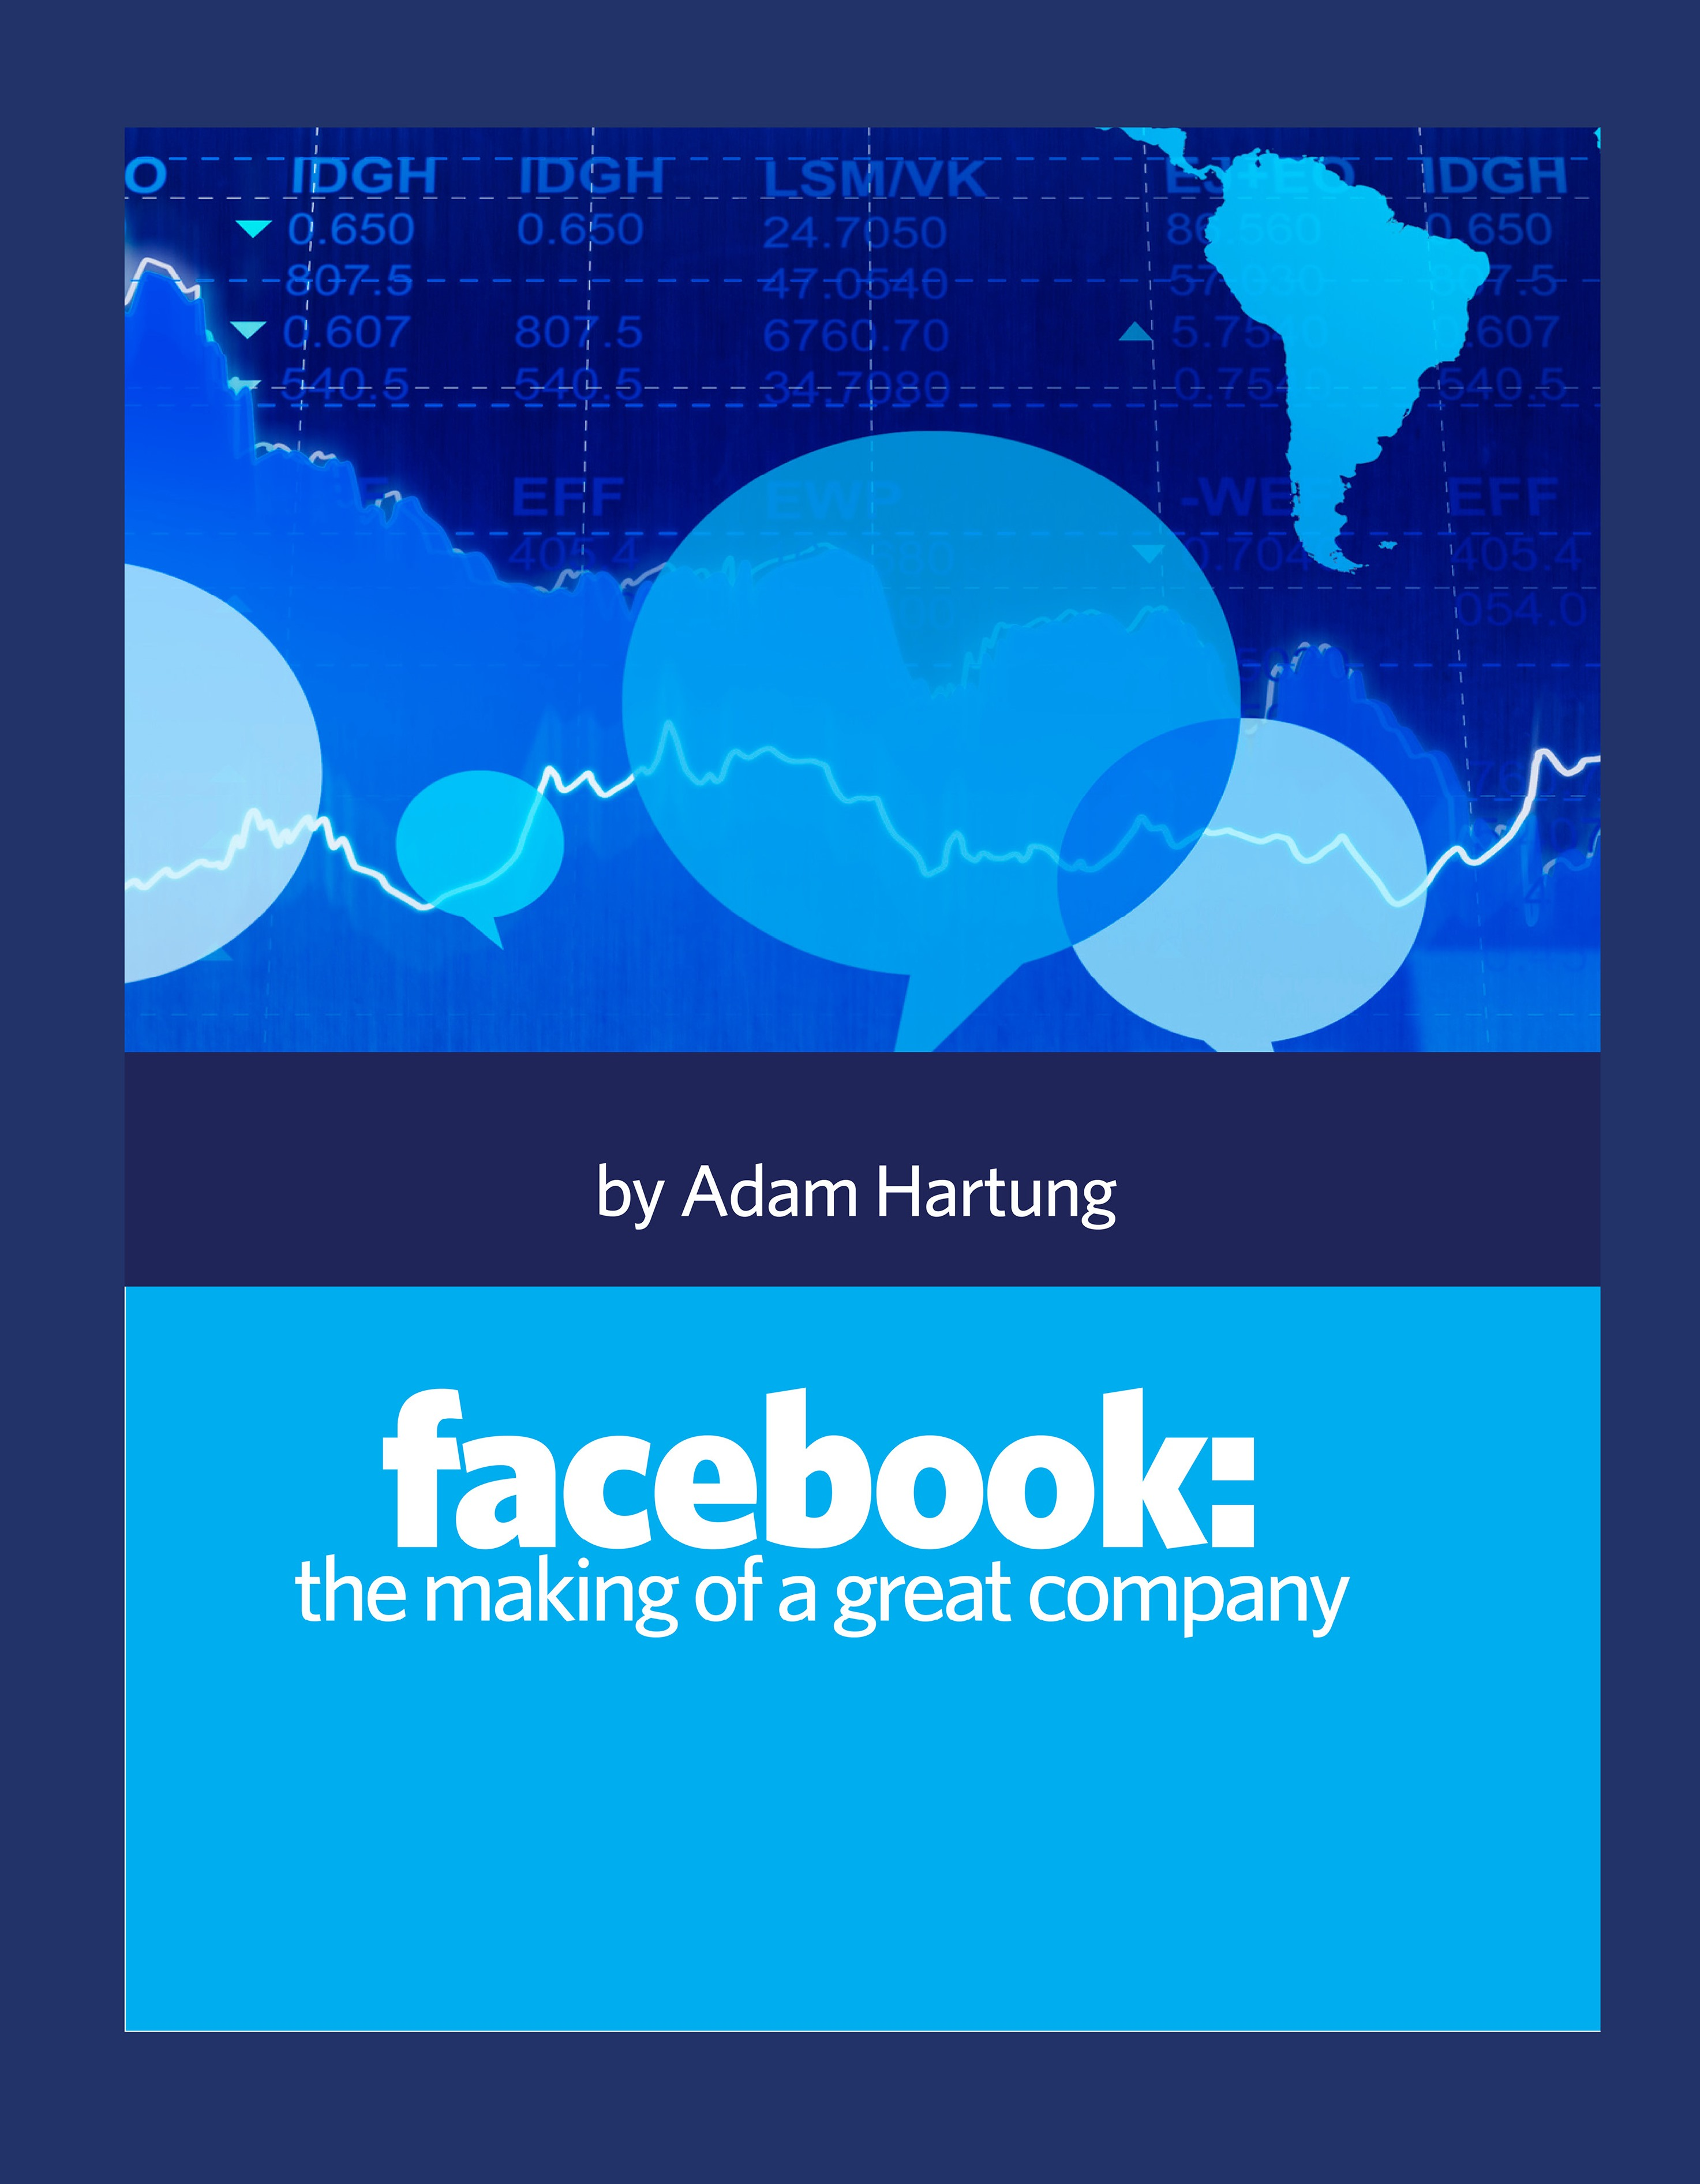 Facebook: the making of a great company cover image